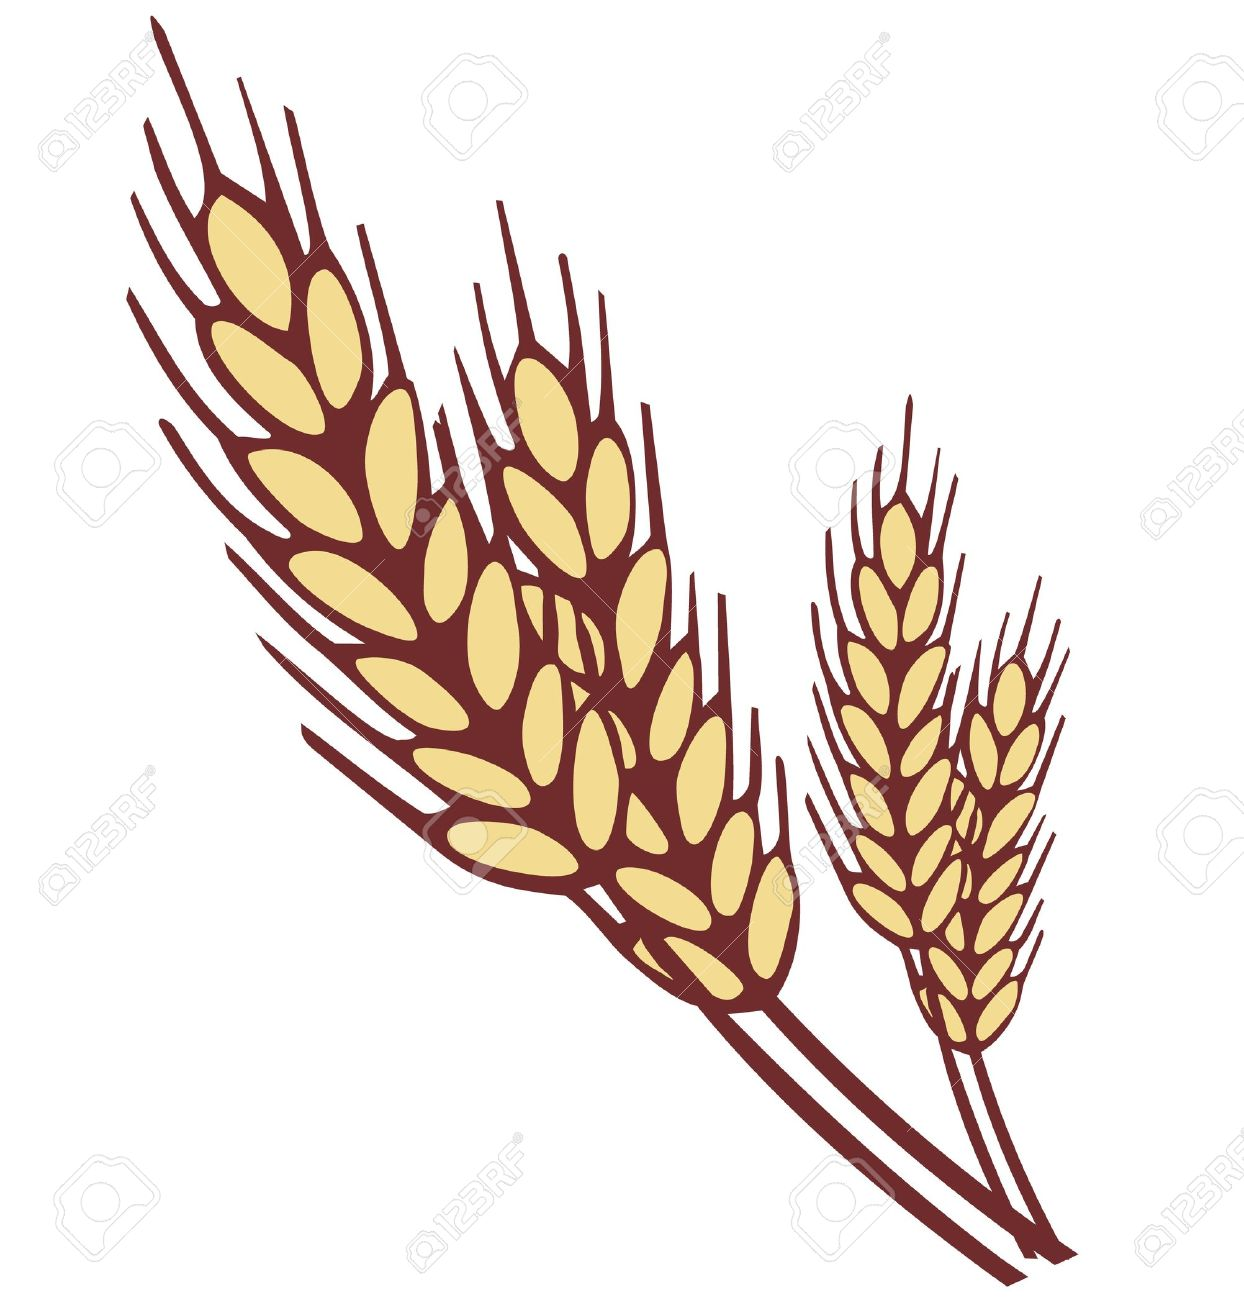 Free download best on. Wheat clipart ear wheat